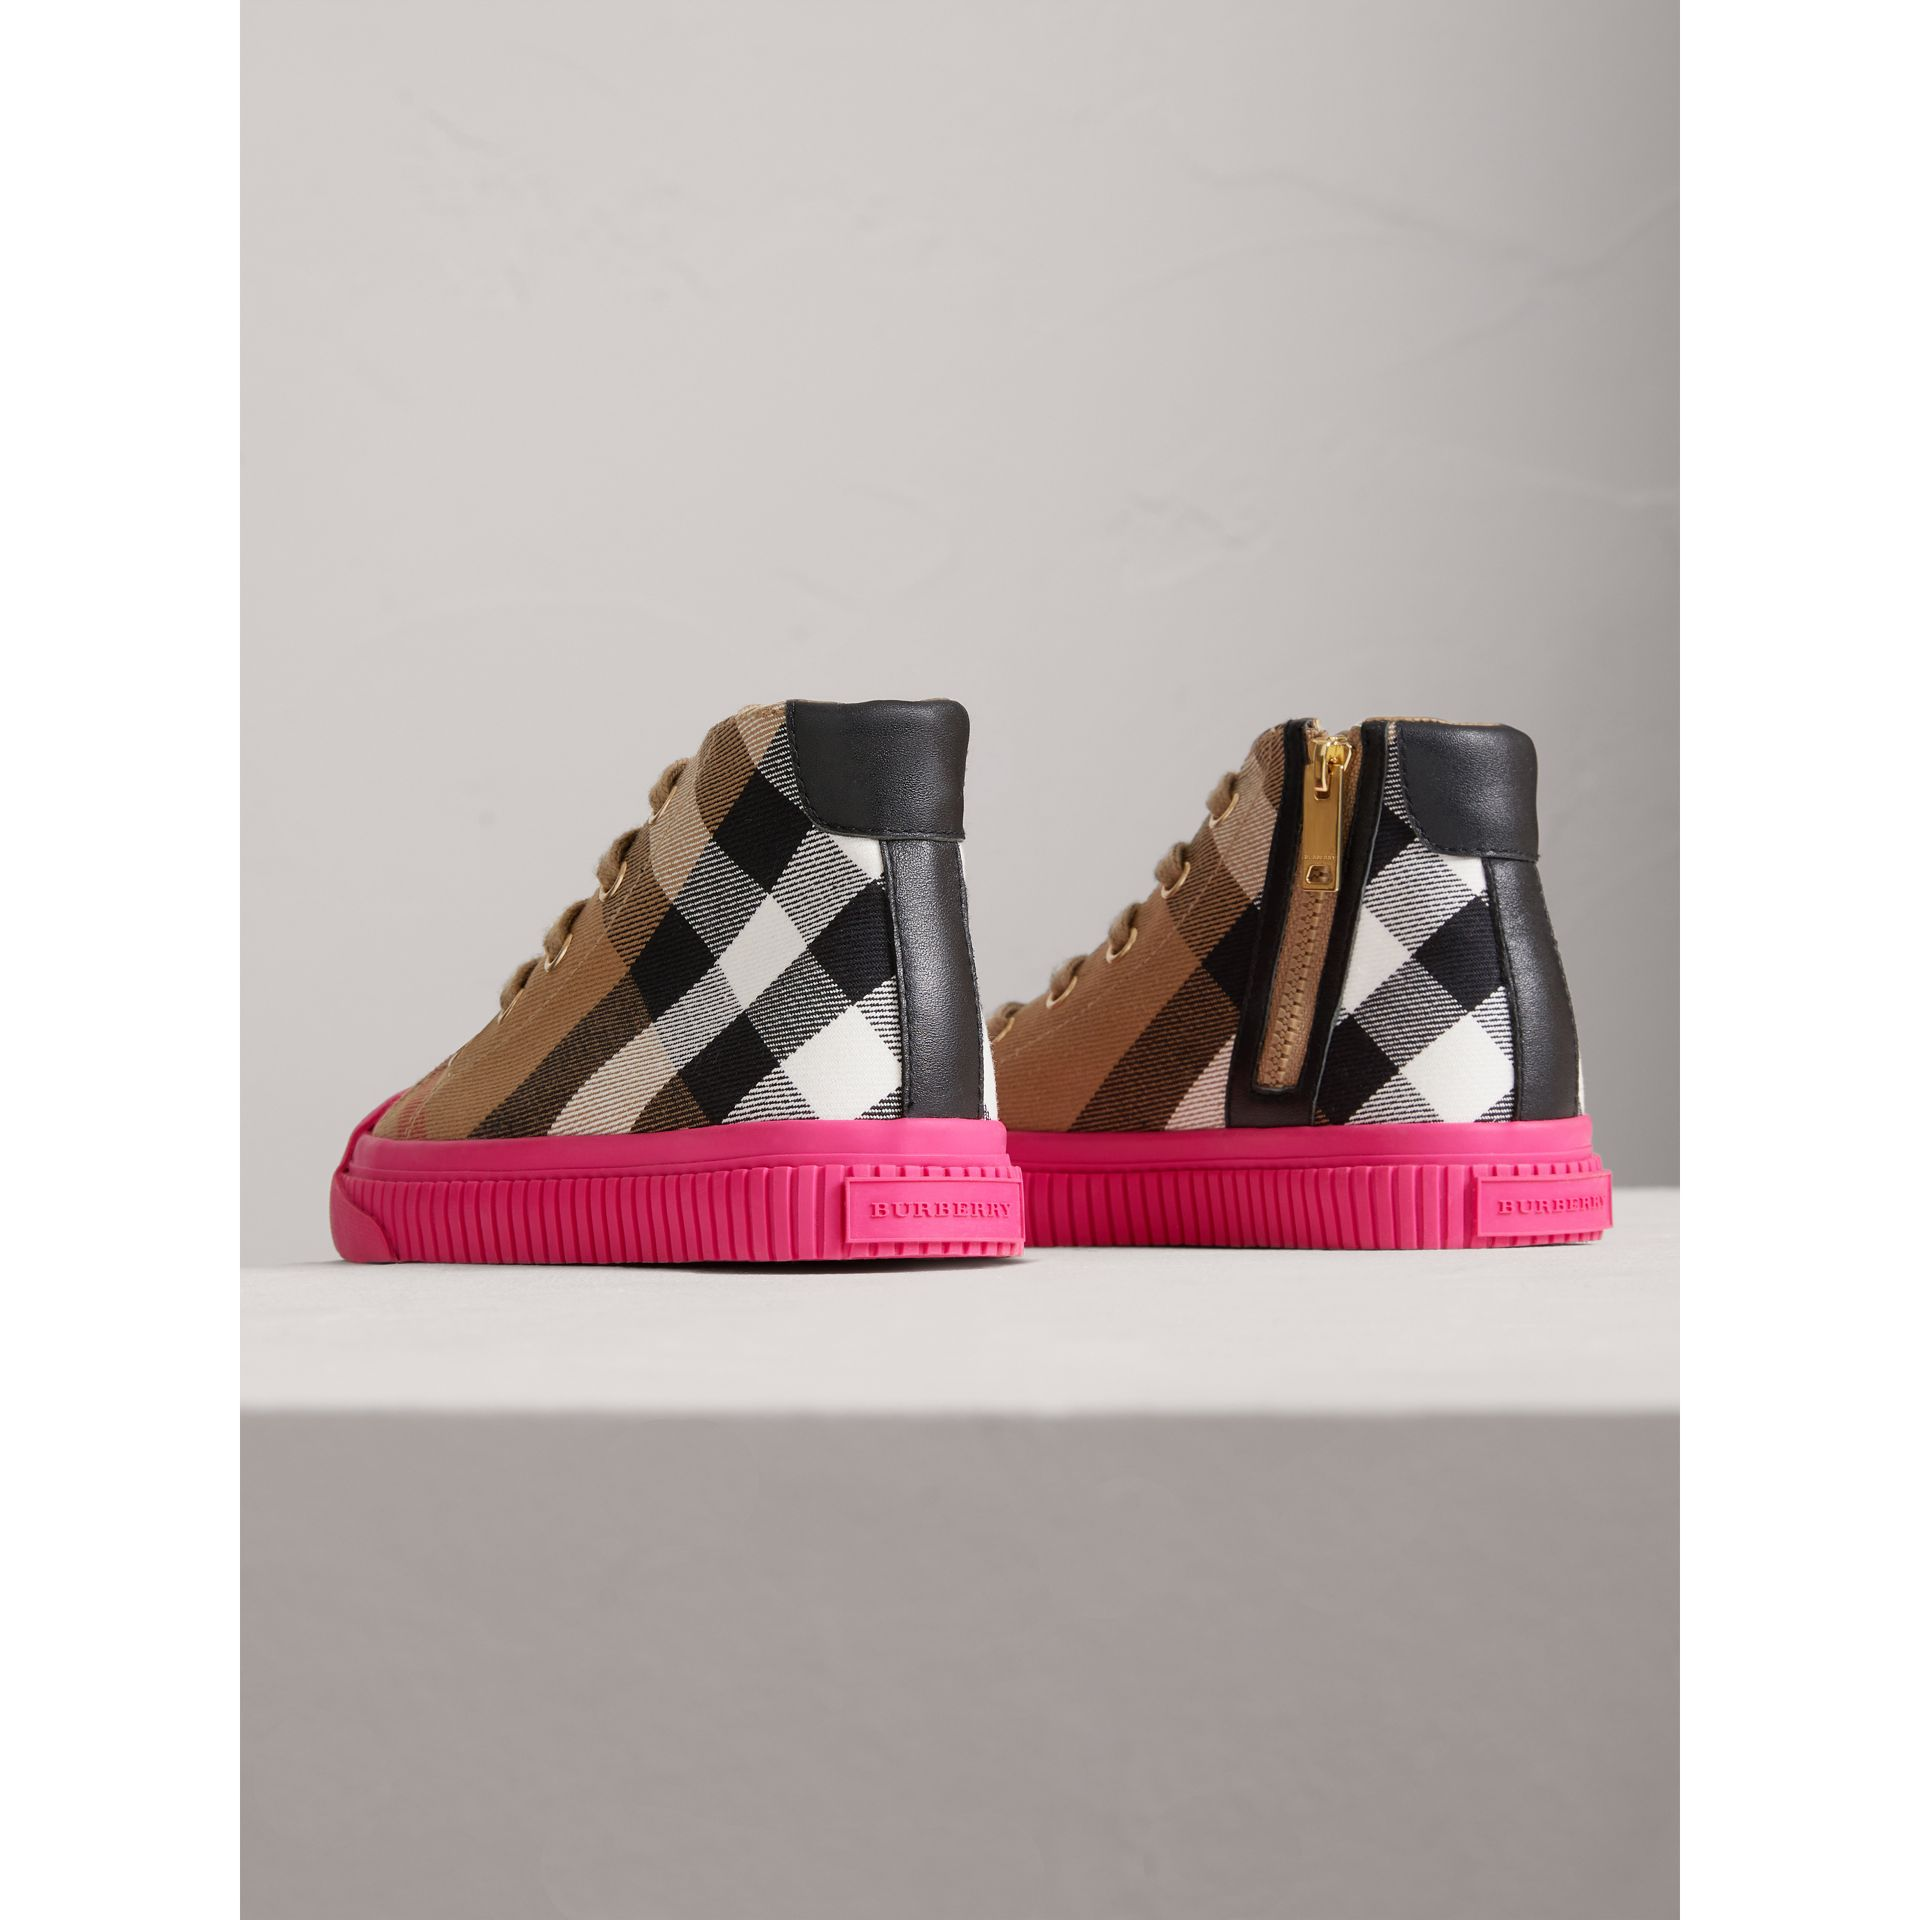 House Check and Leather Trainers in Classic/neon Pink | Burberry - gallery image 2